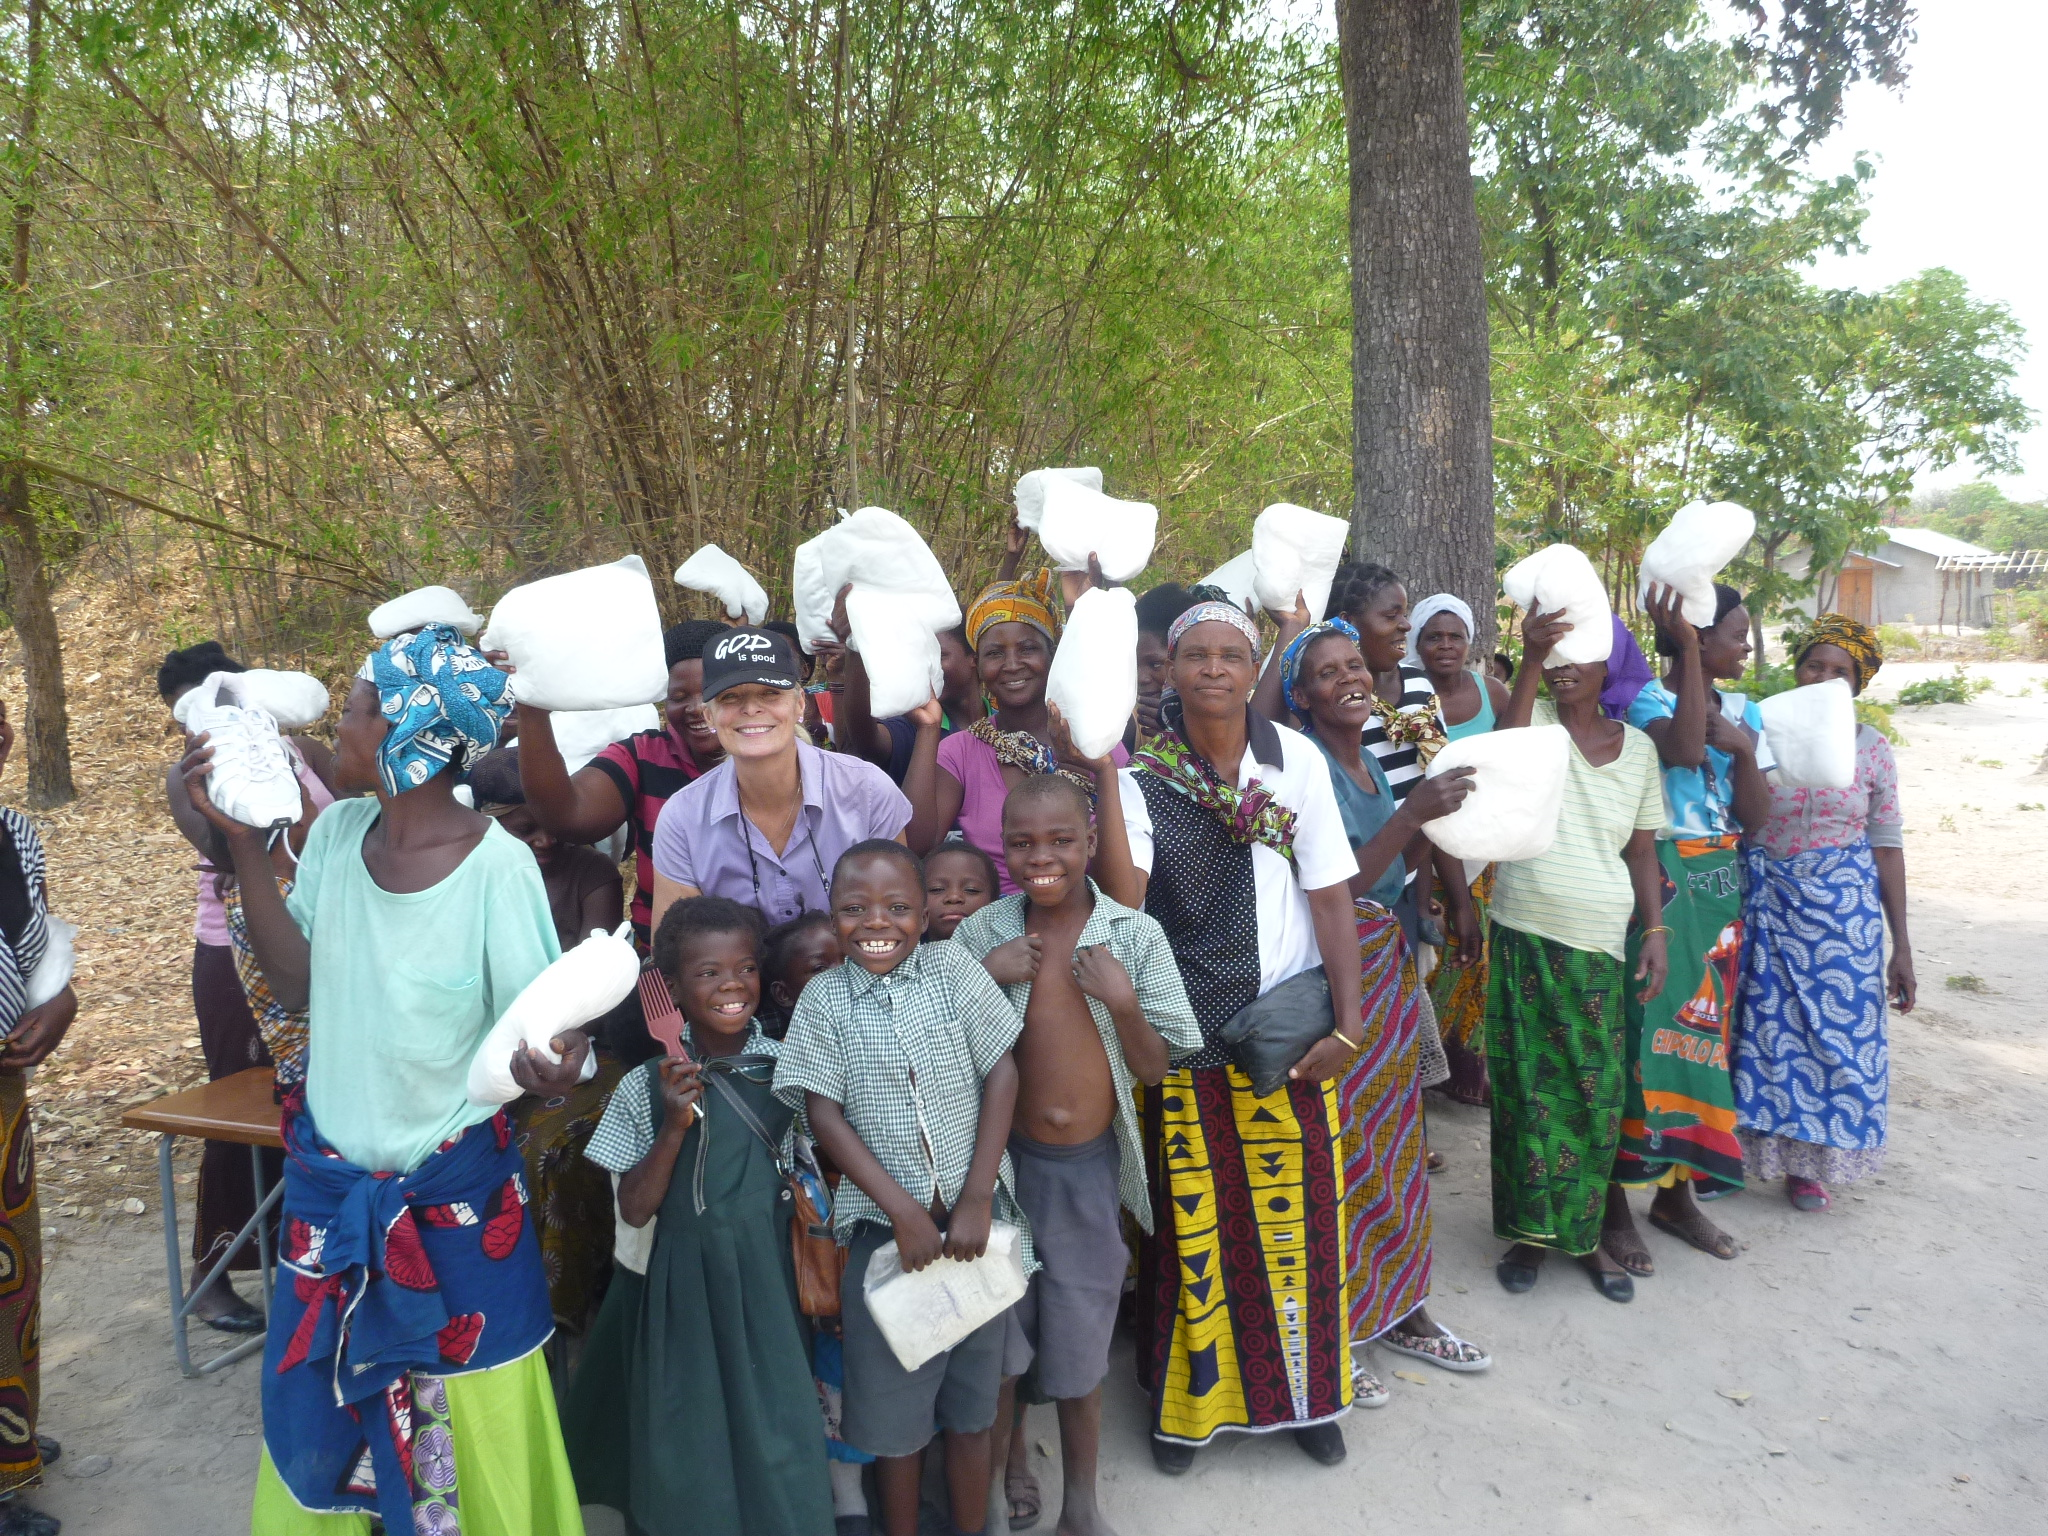 September - 166 mosquito netsdistributed for protection against malaria—a killer of villagers. This was made possible by the fundraising efforts of the Moms Group at Caledonia Presbyterian Church.(blog post)